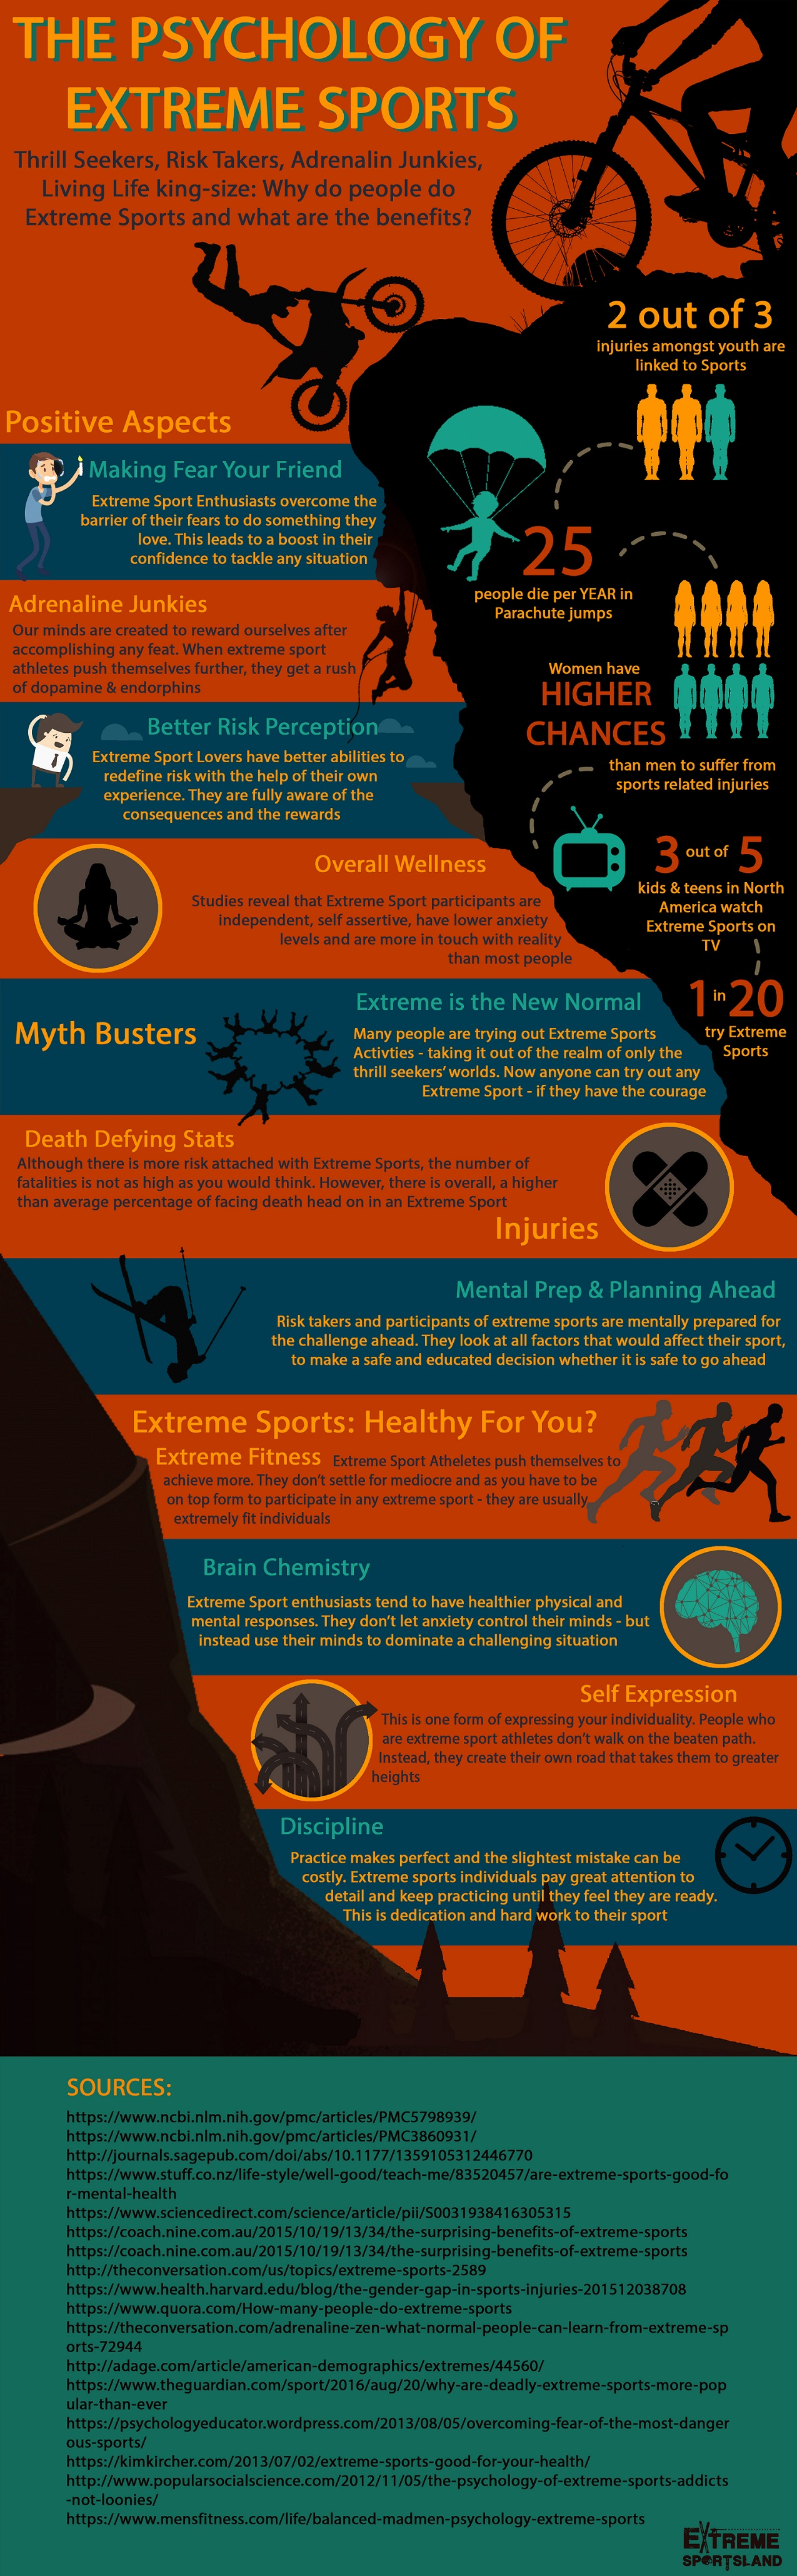 Infographic : The Psychology Of Extreme Sports & Infographic